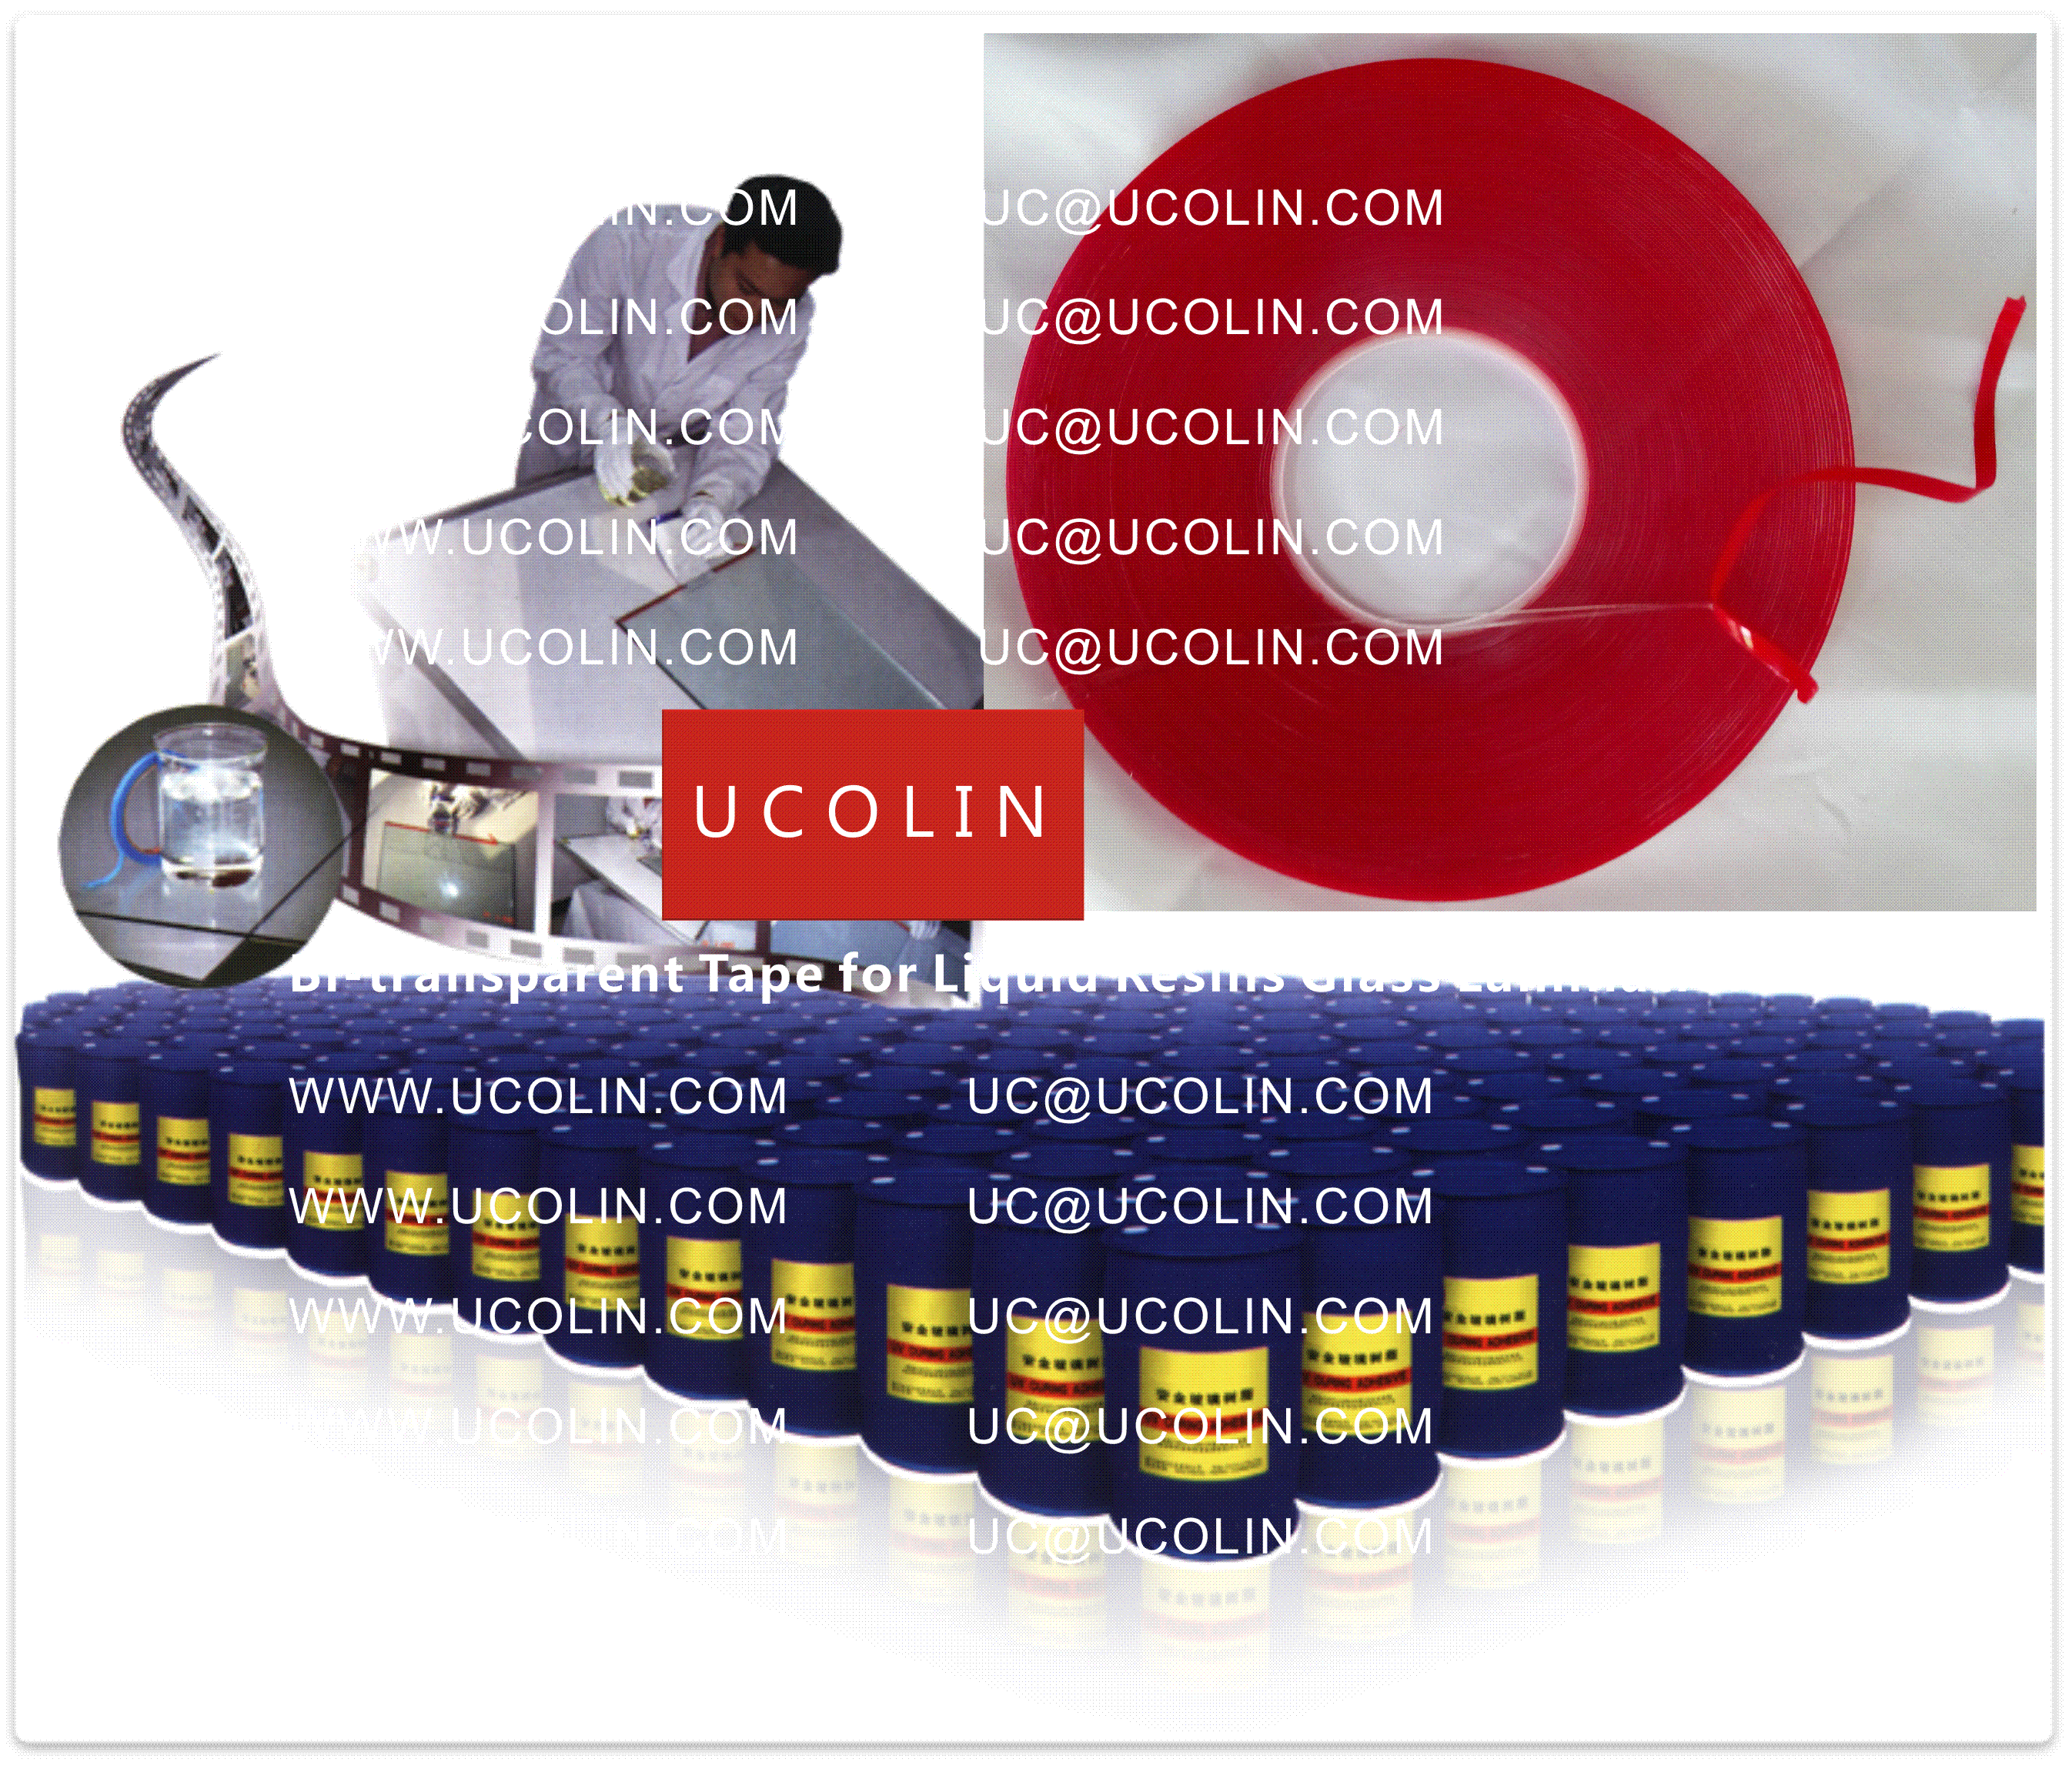 001 Bi-transparent Tape for Liquid Resins for Glass Lamination